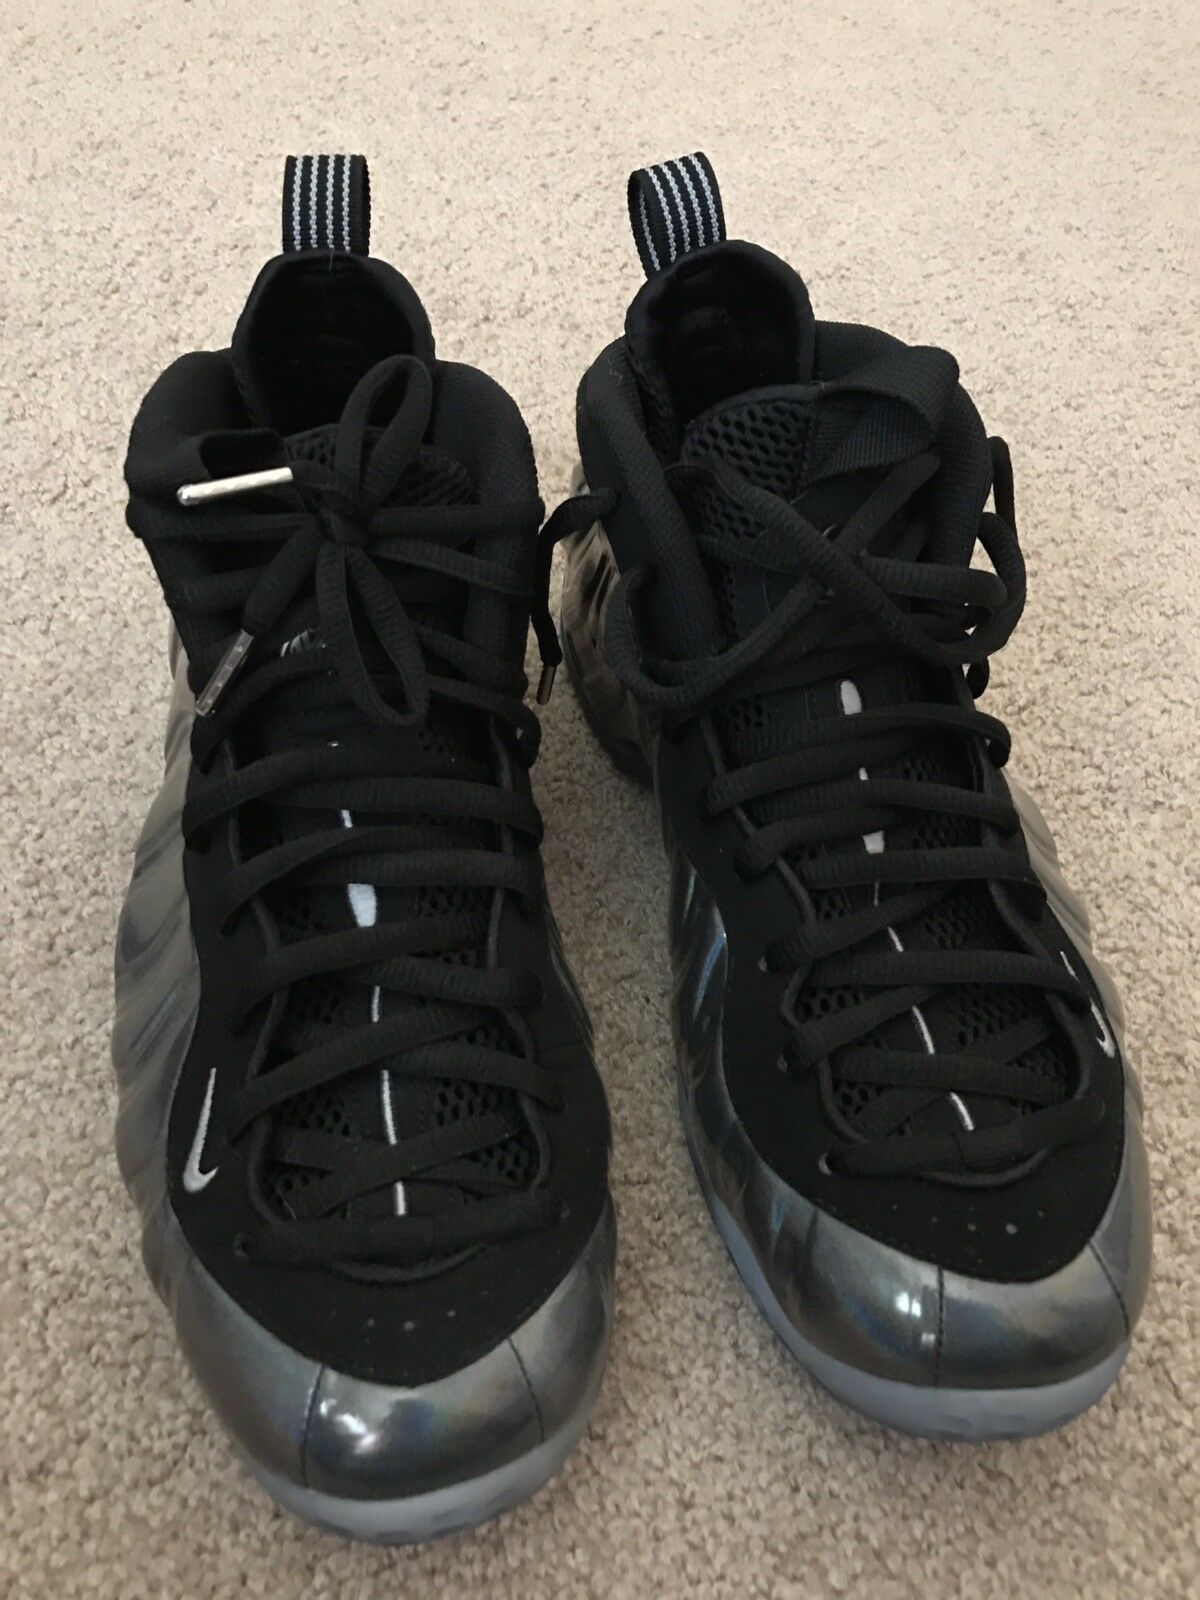 Nike Air Foamposite One Hologram Size 10